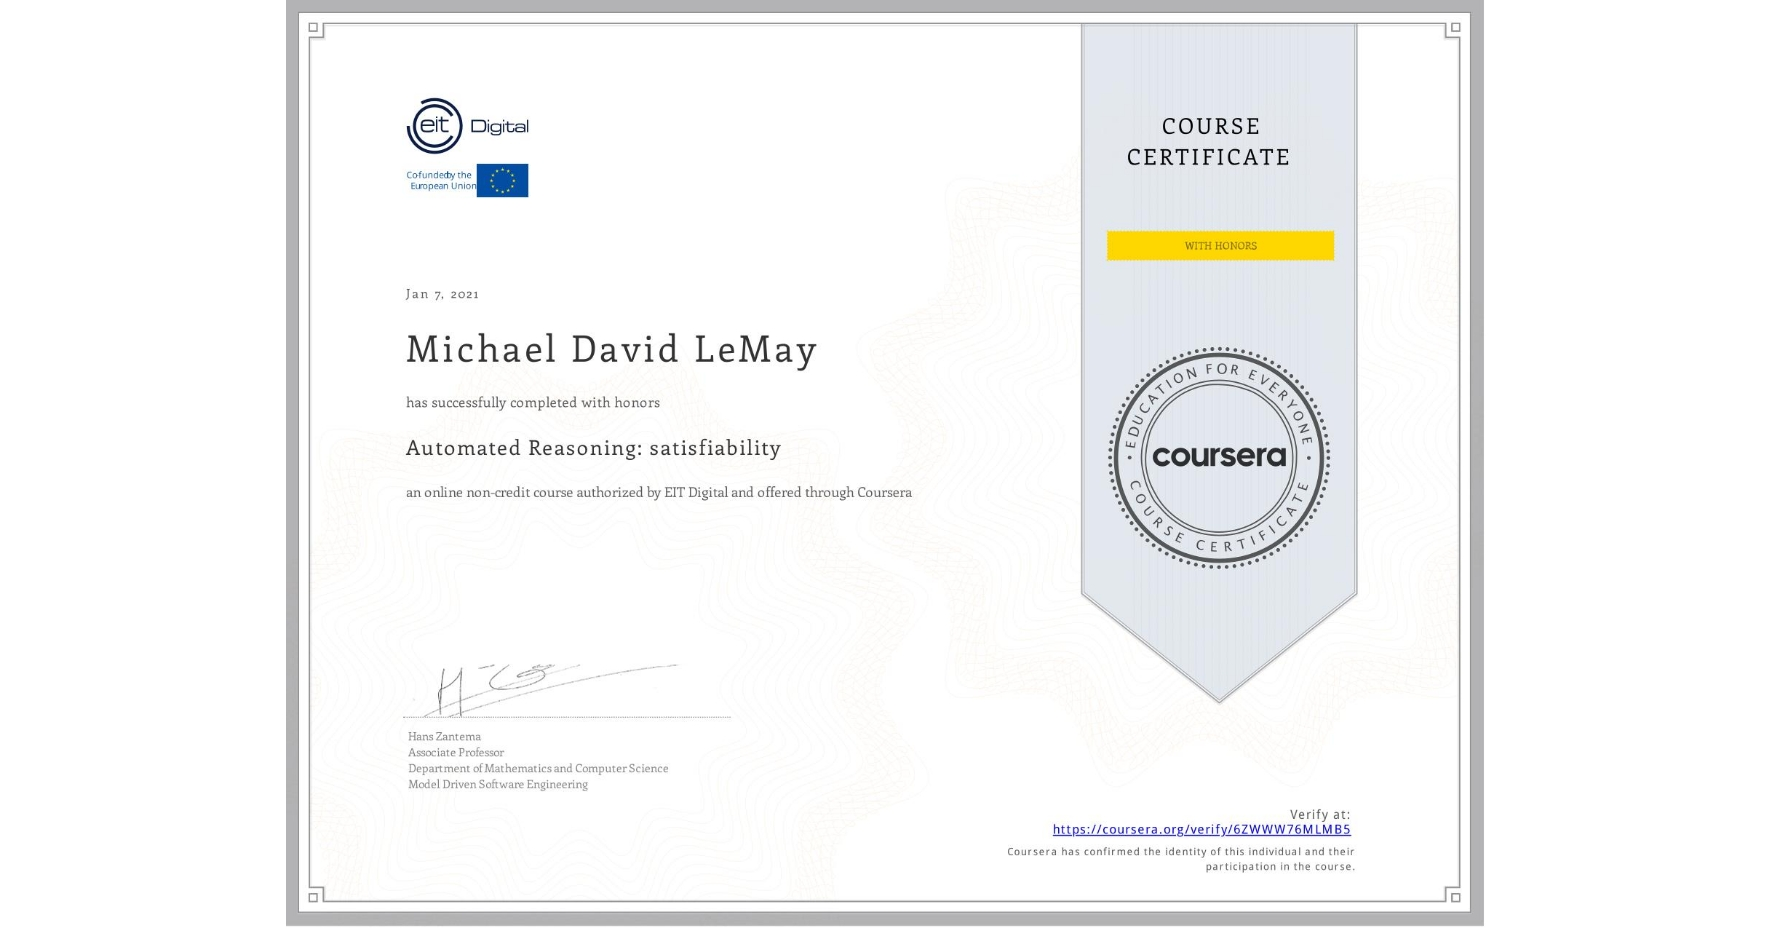 View certificate for Michael David LeMay, Automated Reasoning: satisfiability, an online non-credit course authorized by EIT Digital  and offered through Coursera